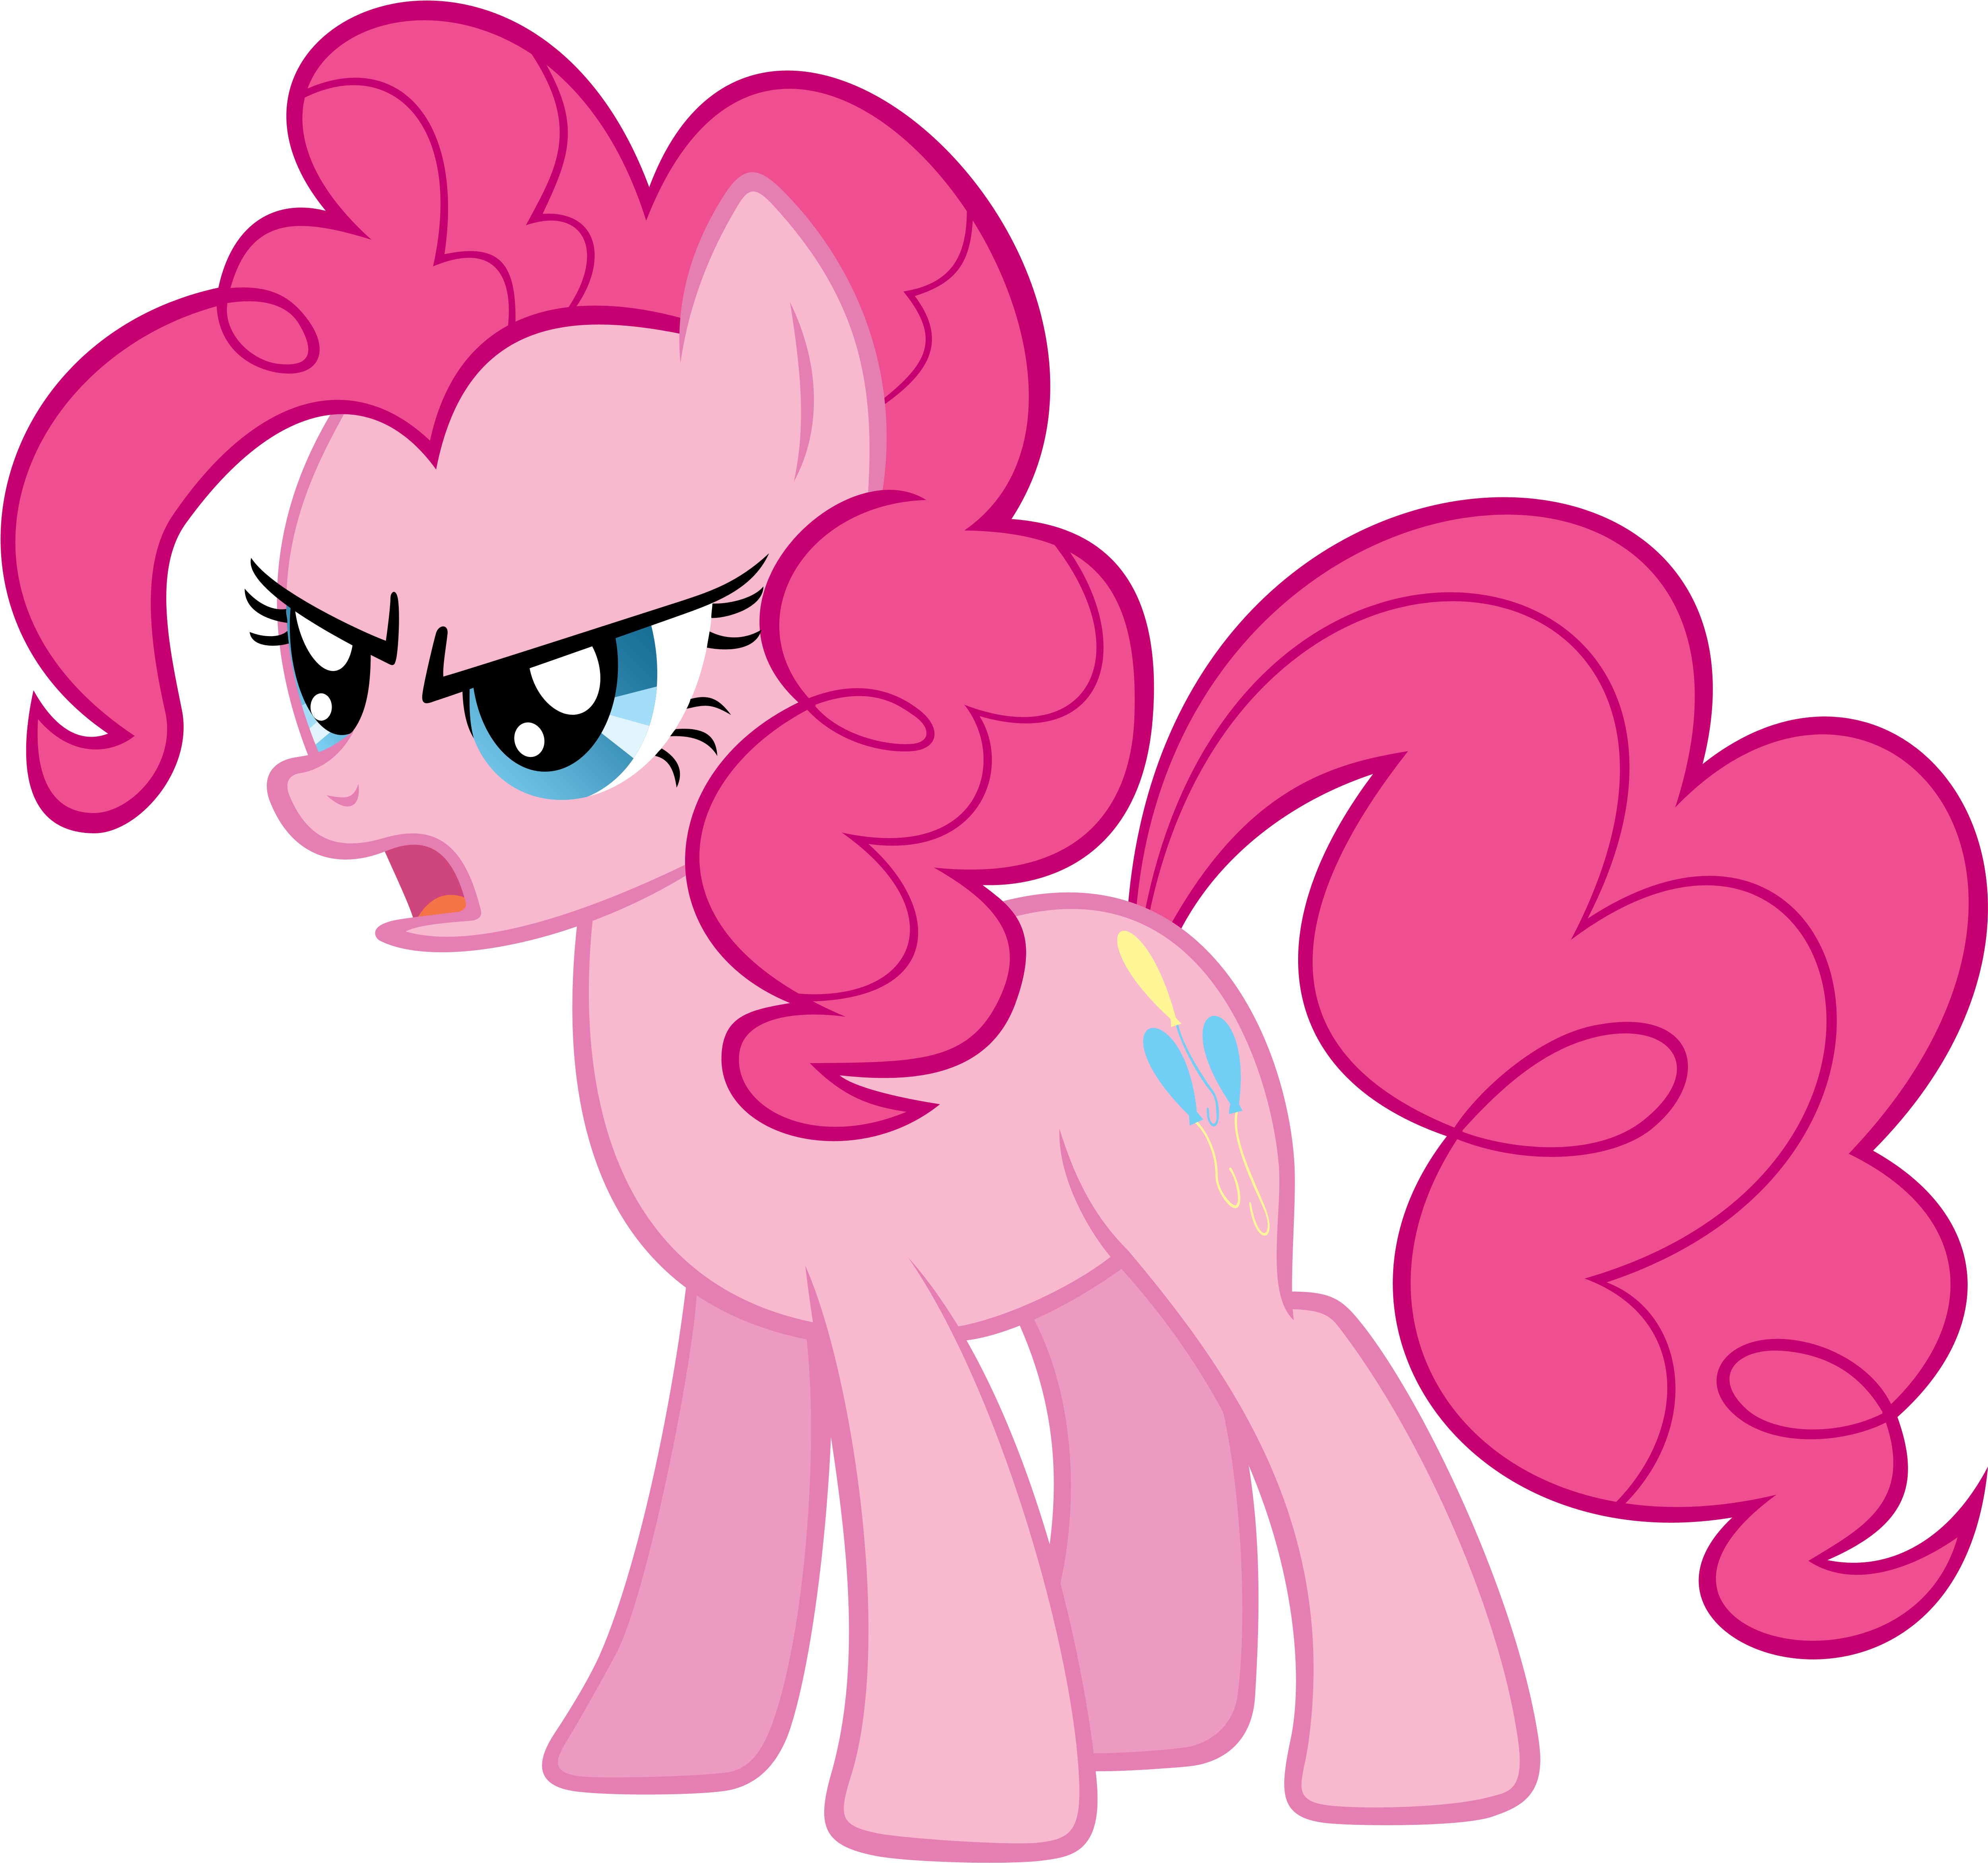 Pinkie Pie is Angry